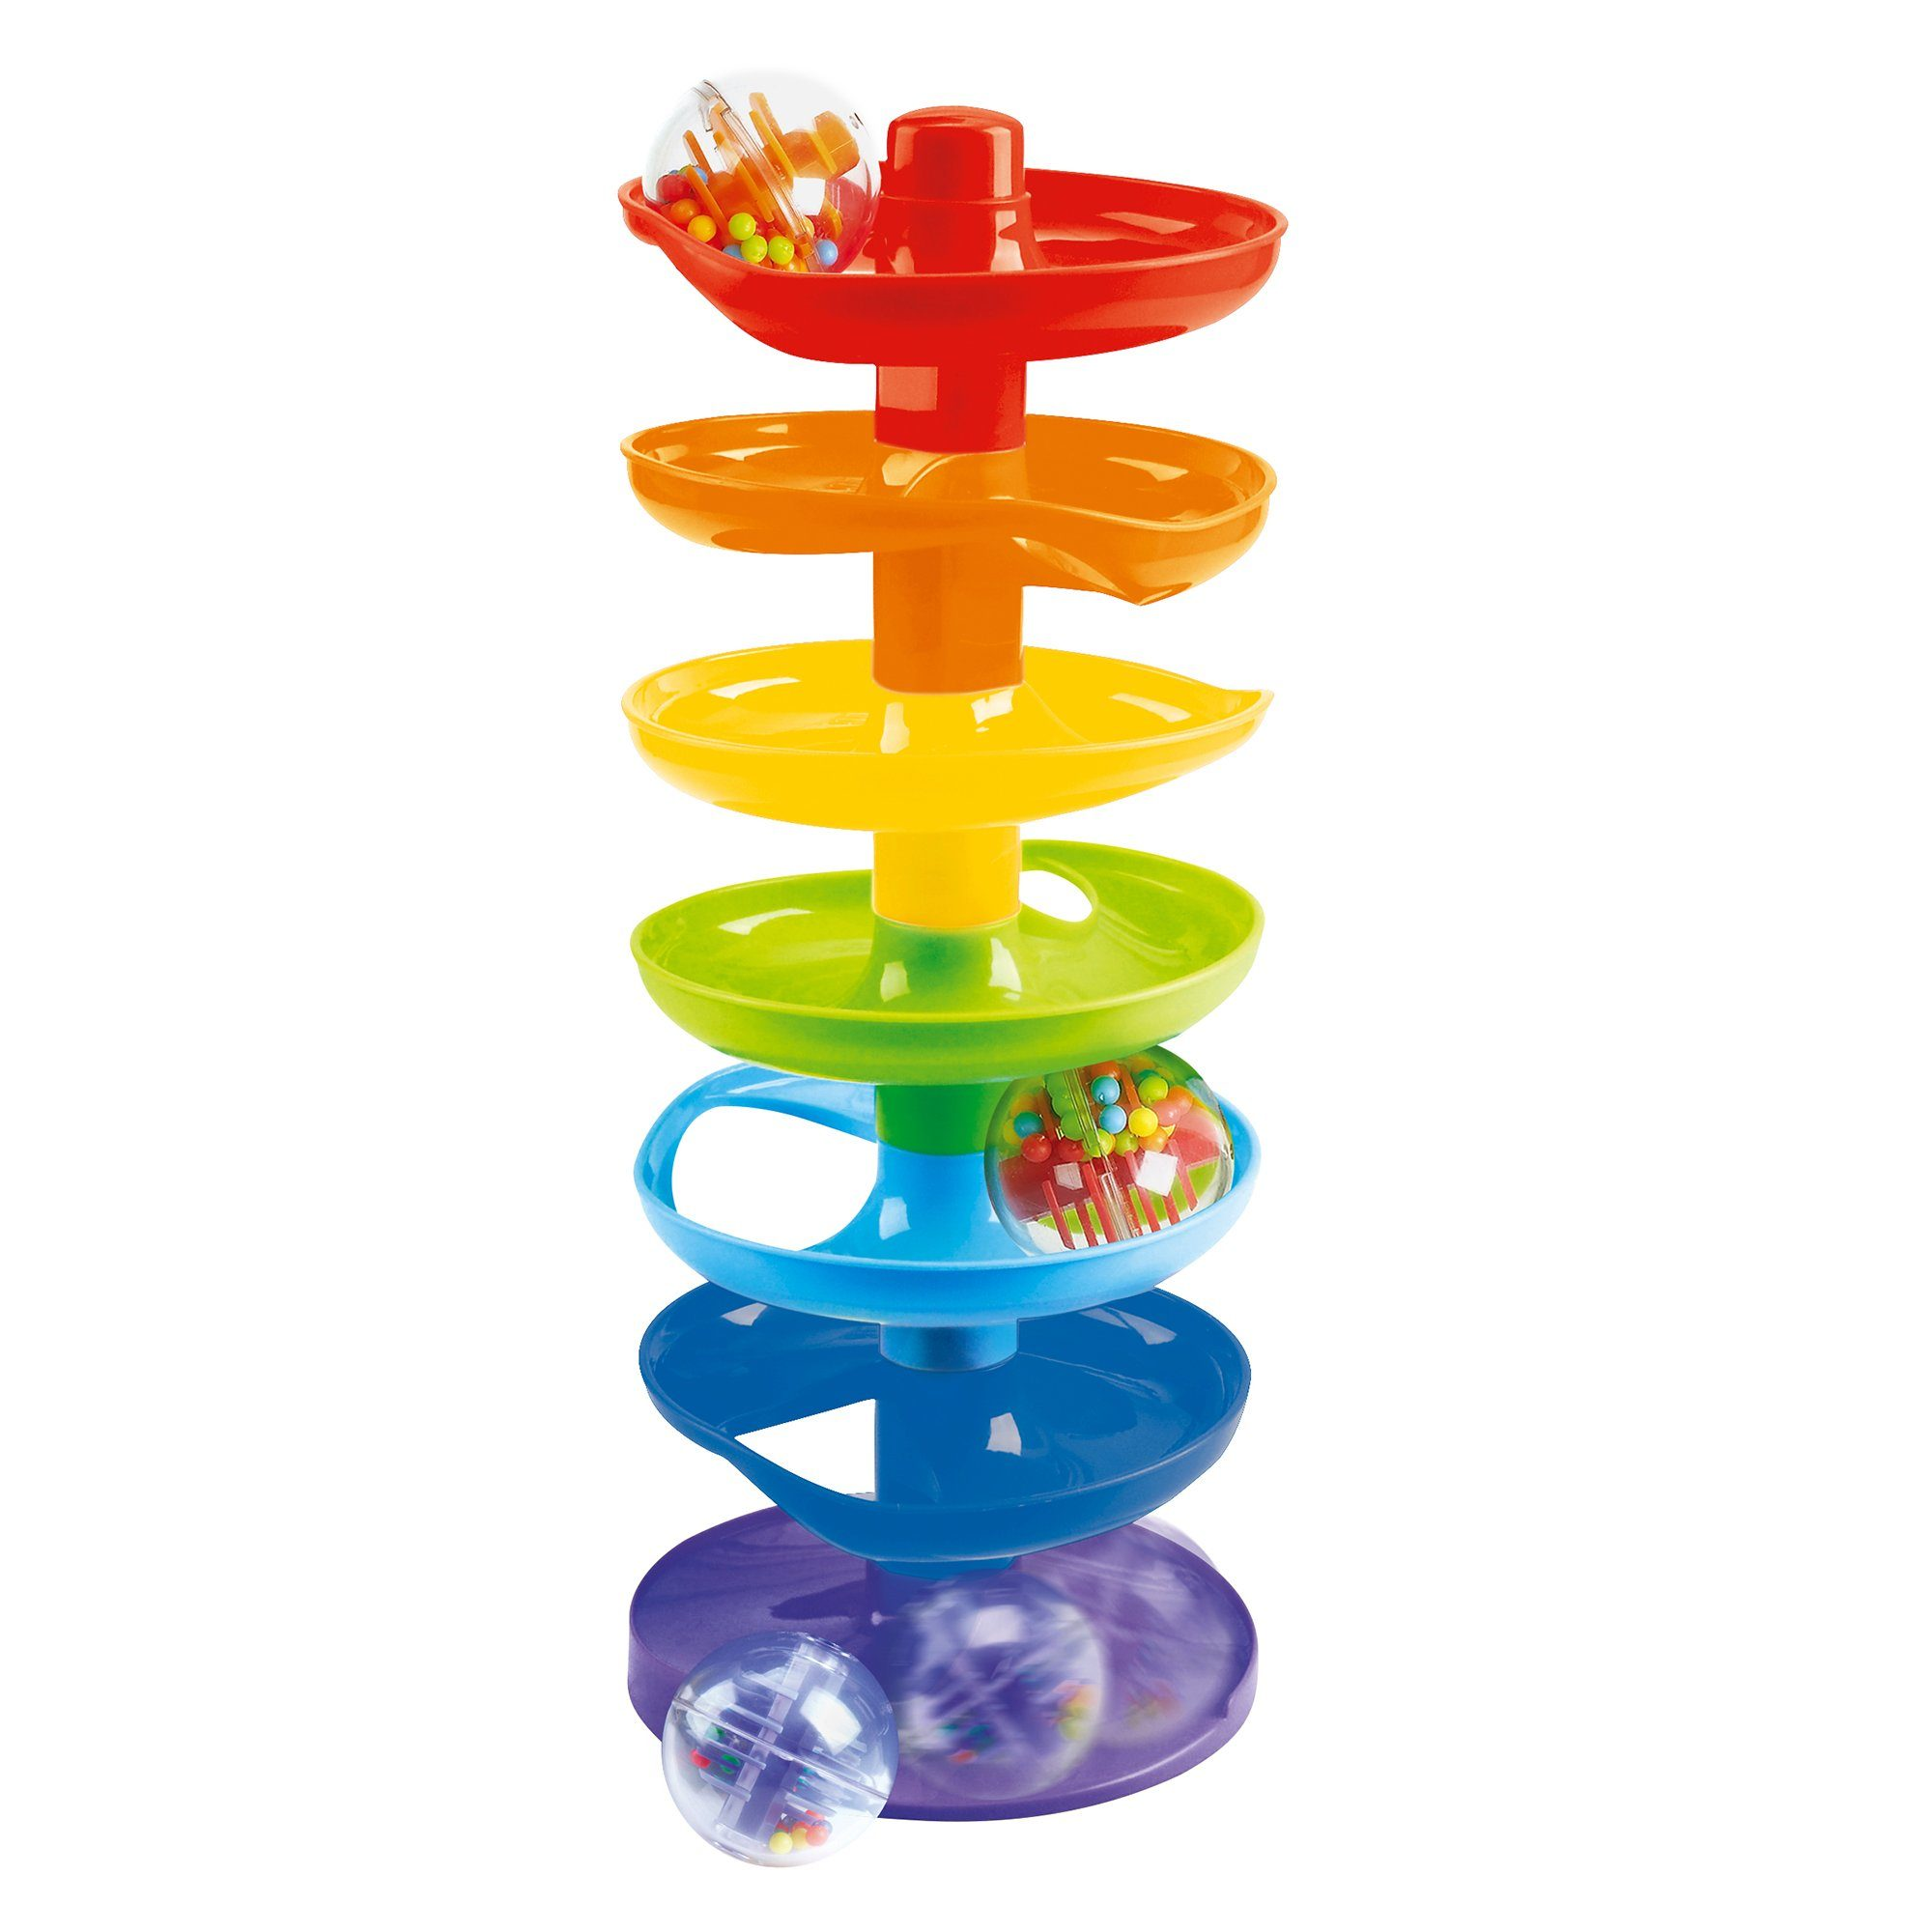 50% OFF! Super Spiral Tower